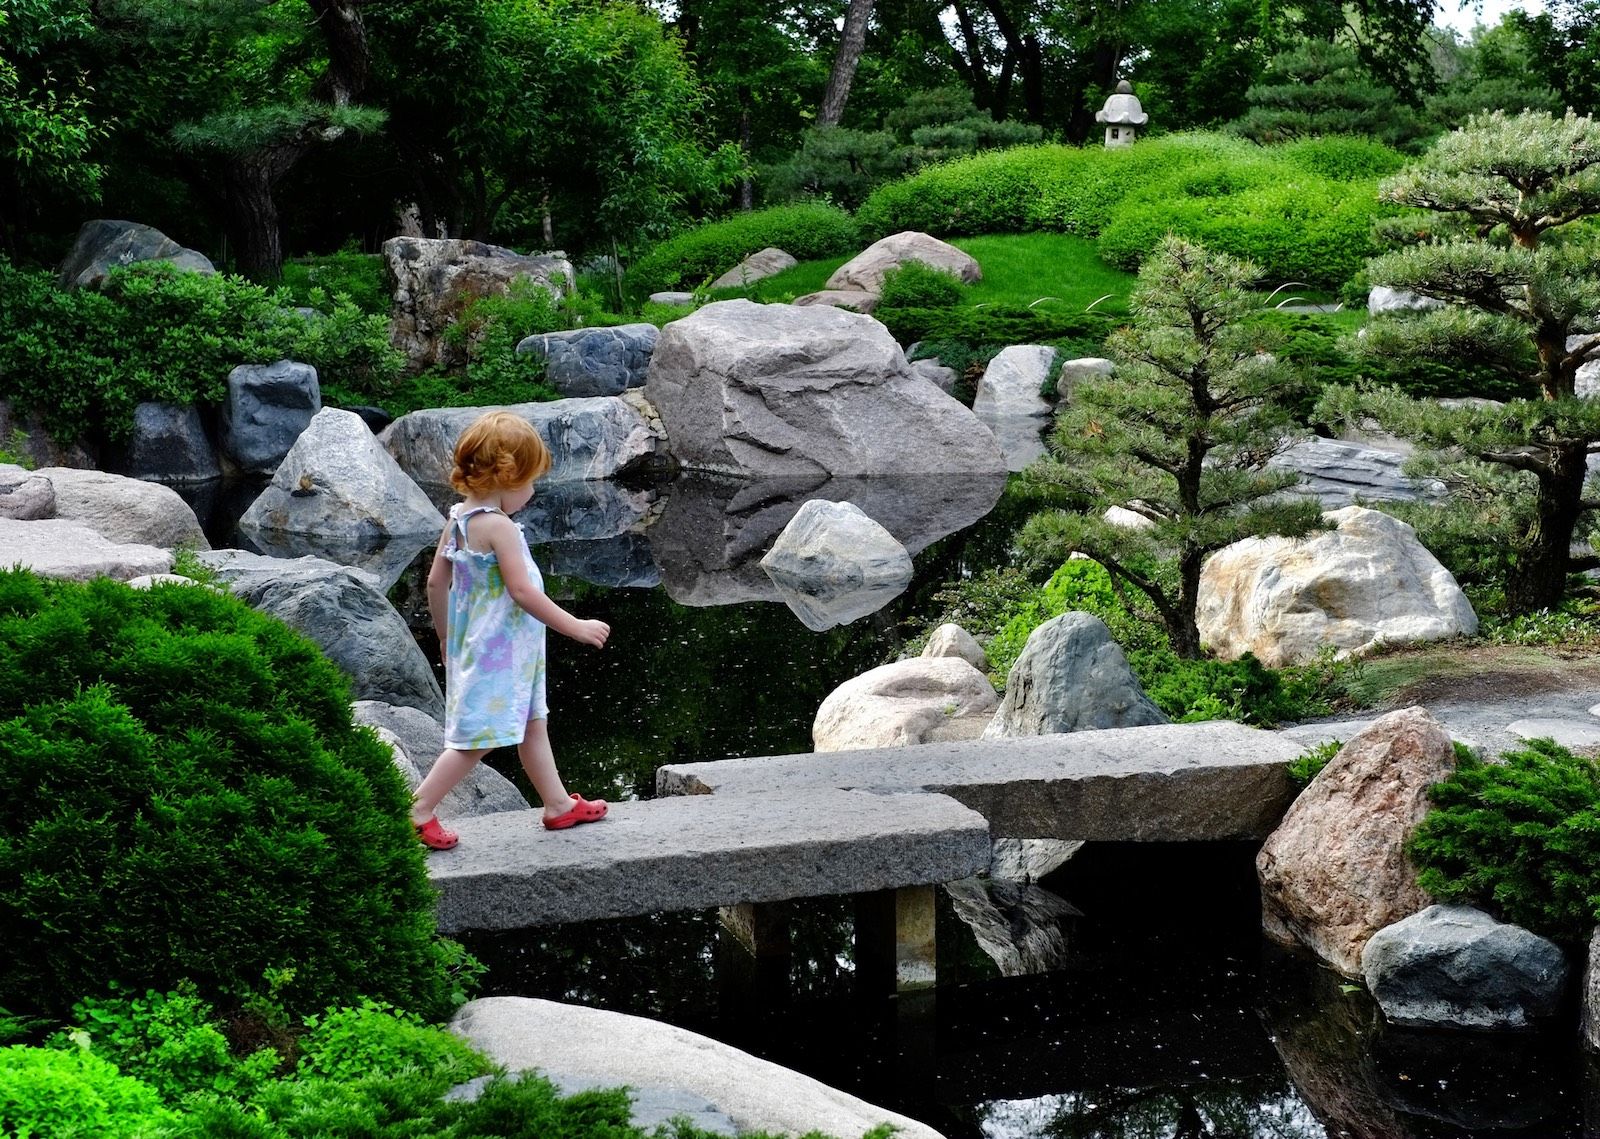 small young girl with red hair walking on stone bridge in japanese garden